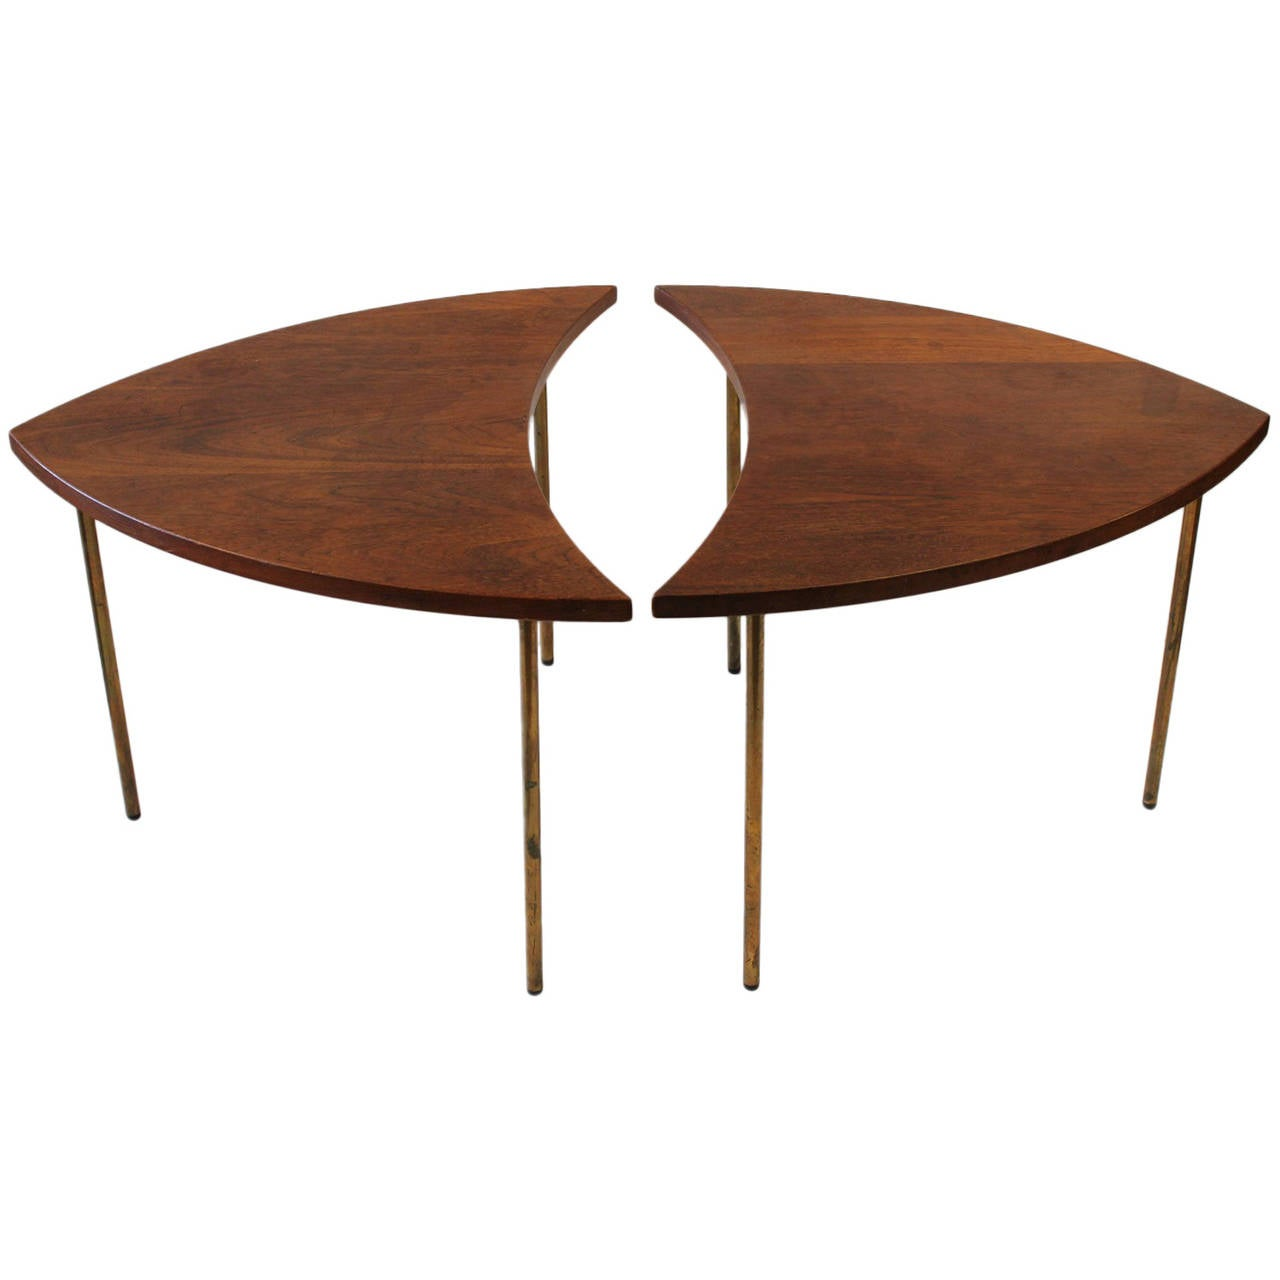 Rare Mid-Century Danish Segmented Side Tables by Peter Hvidt for John Stewart